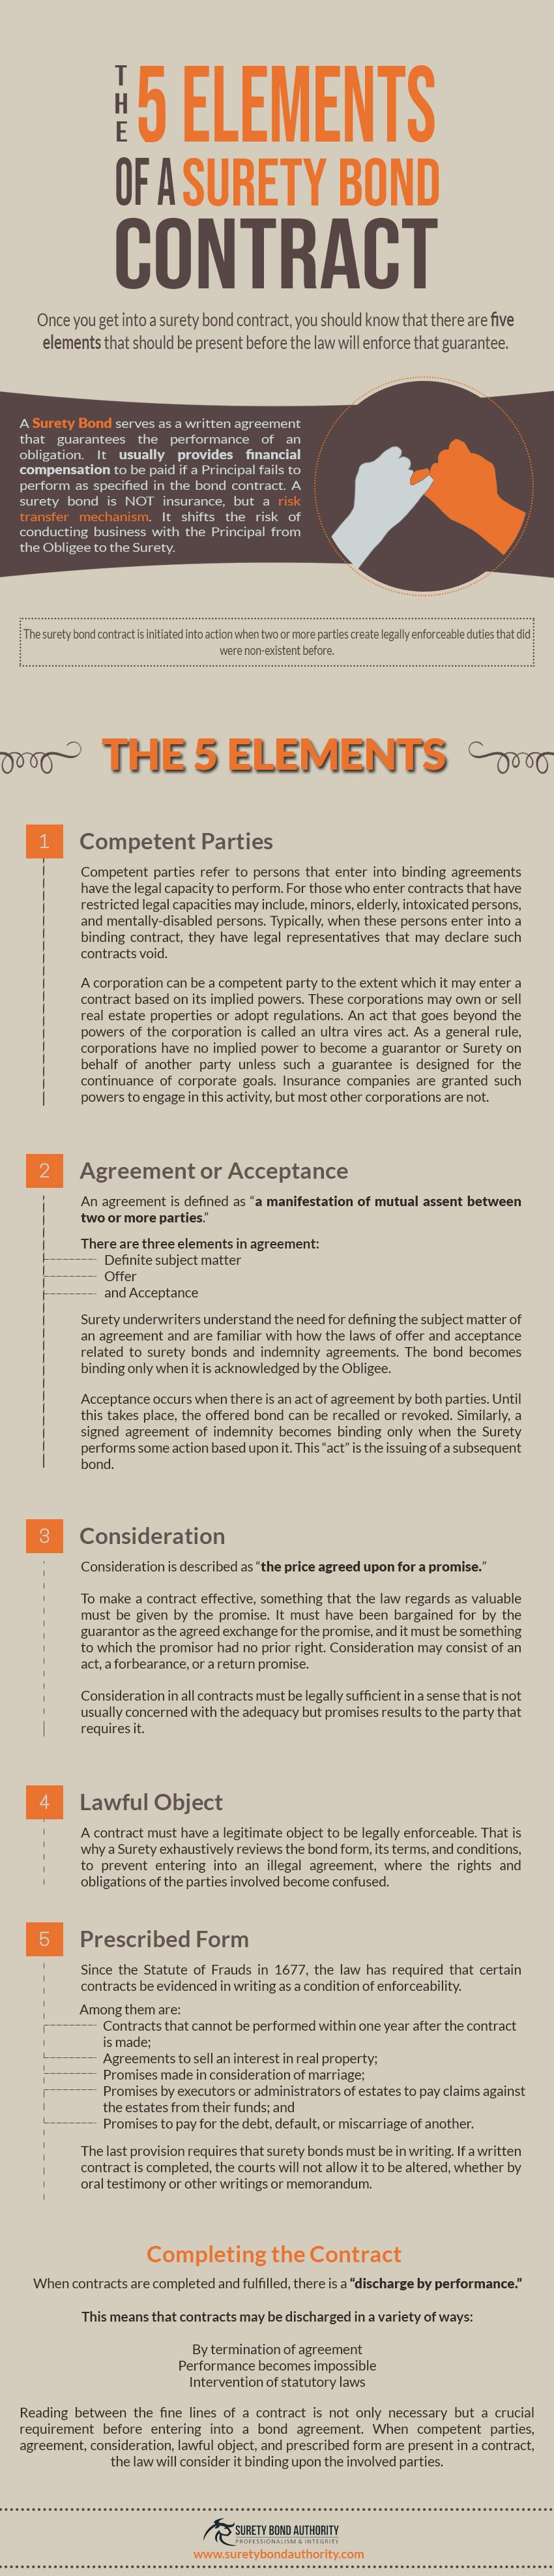 Surety Bond Contract The 5 Elements Bond Contract Infographic